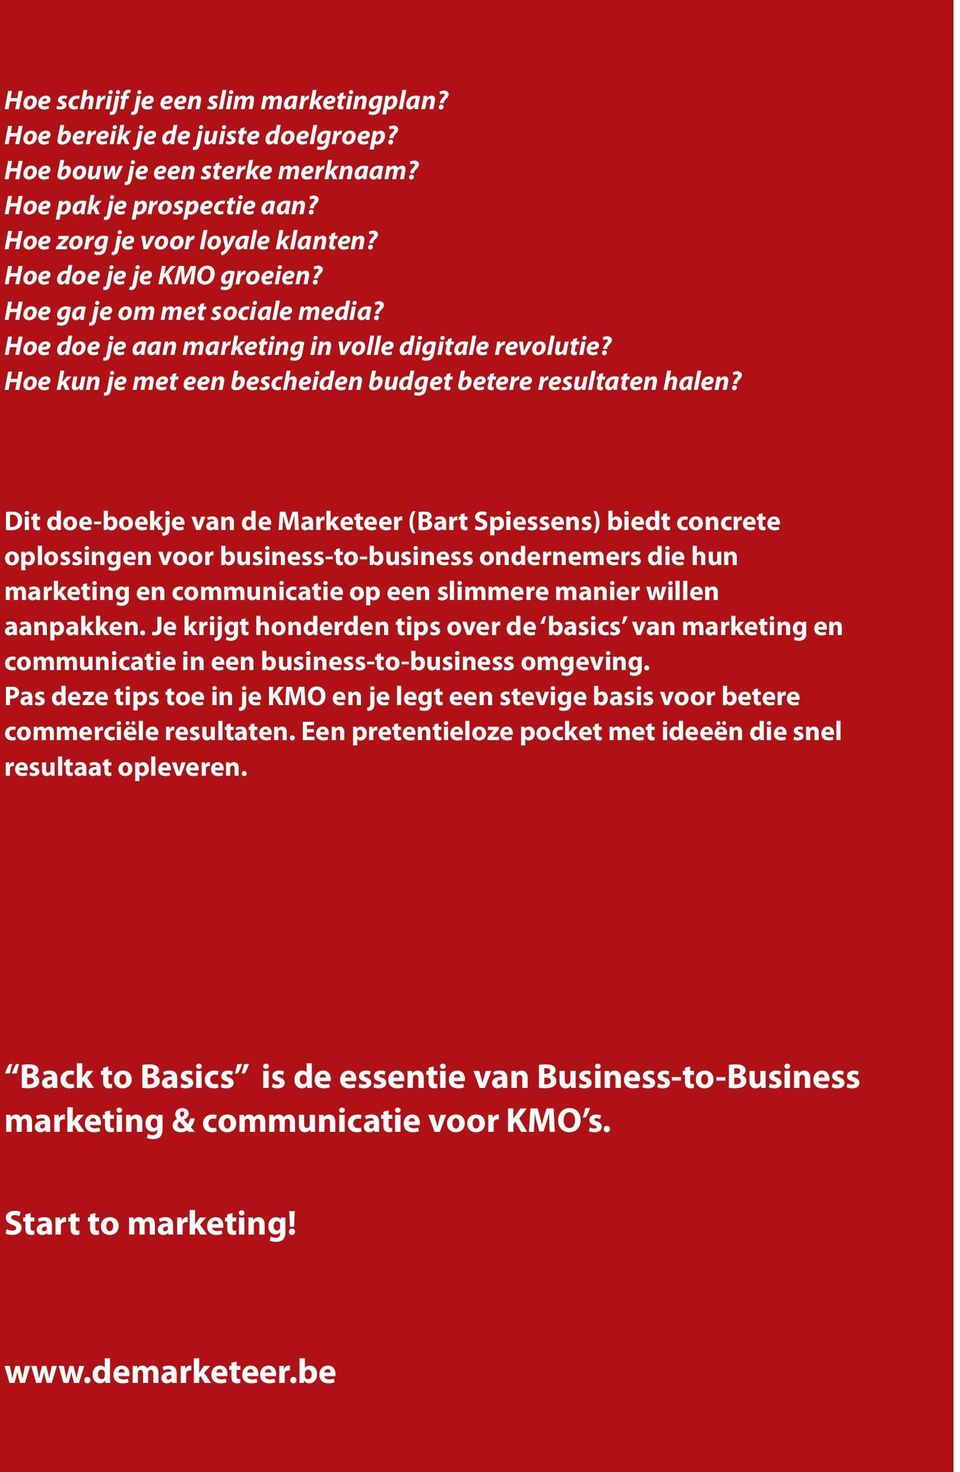 Dit doe-boekje van de Marketeer (Bart Spiessens) biedt concrete oplossingen voor business-to-business ondernemers die hun marketing en communicatie op een slimmere manier willen aanpakken.